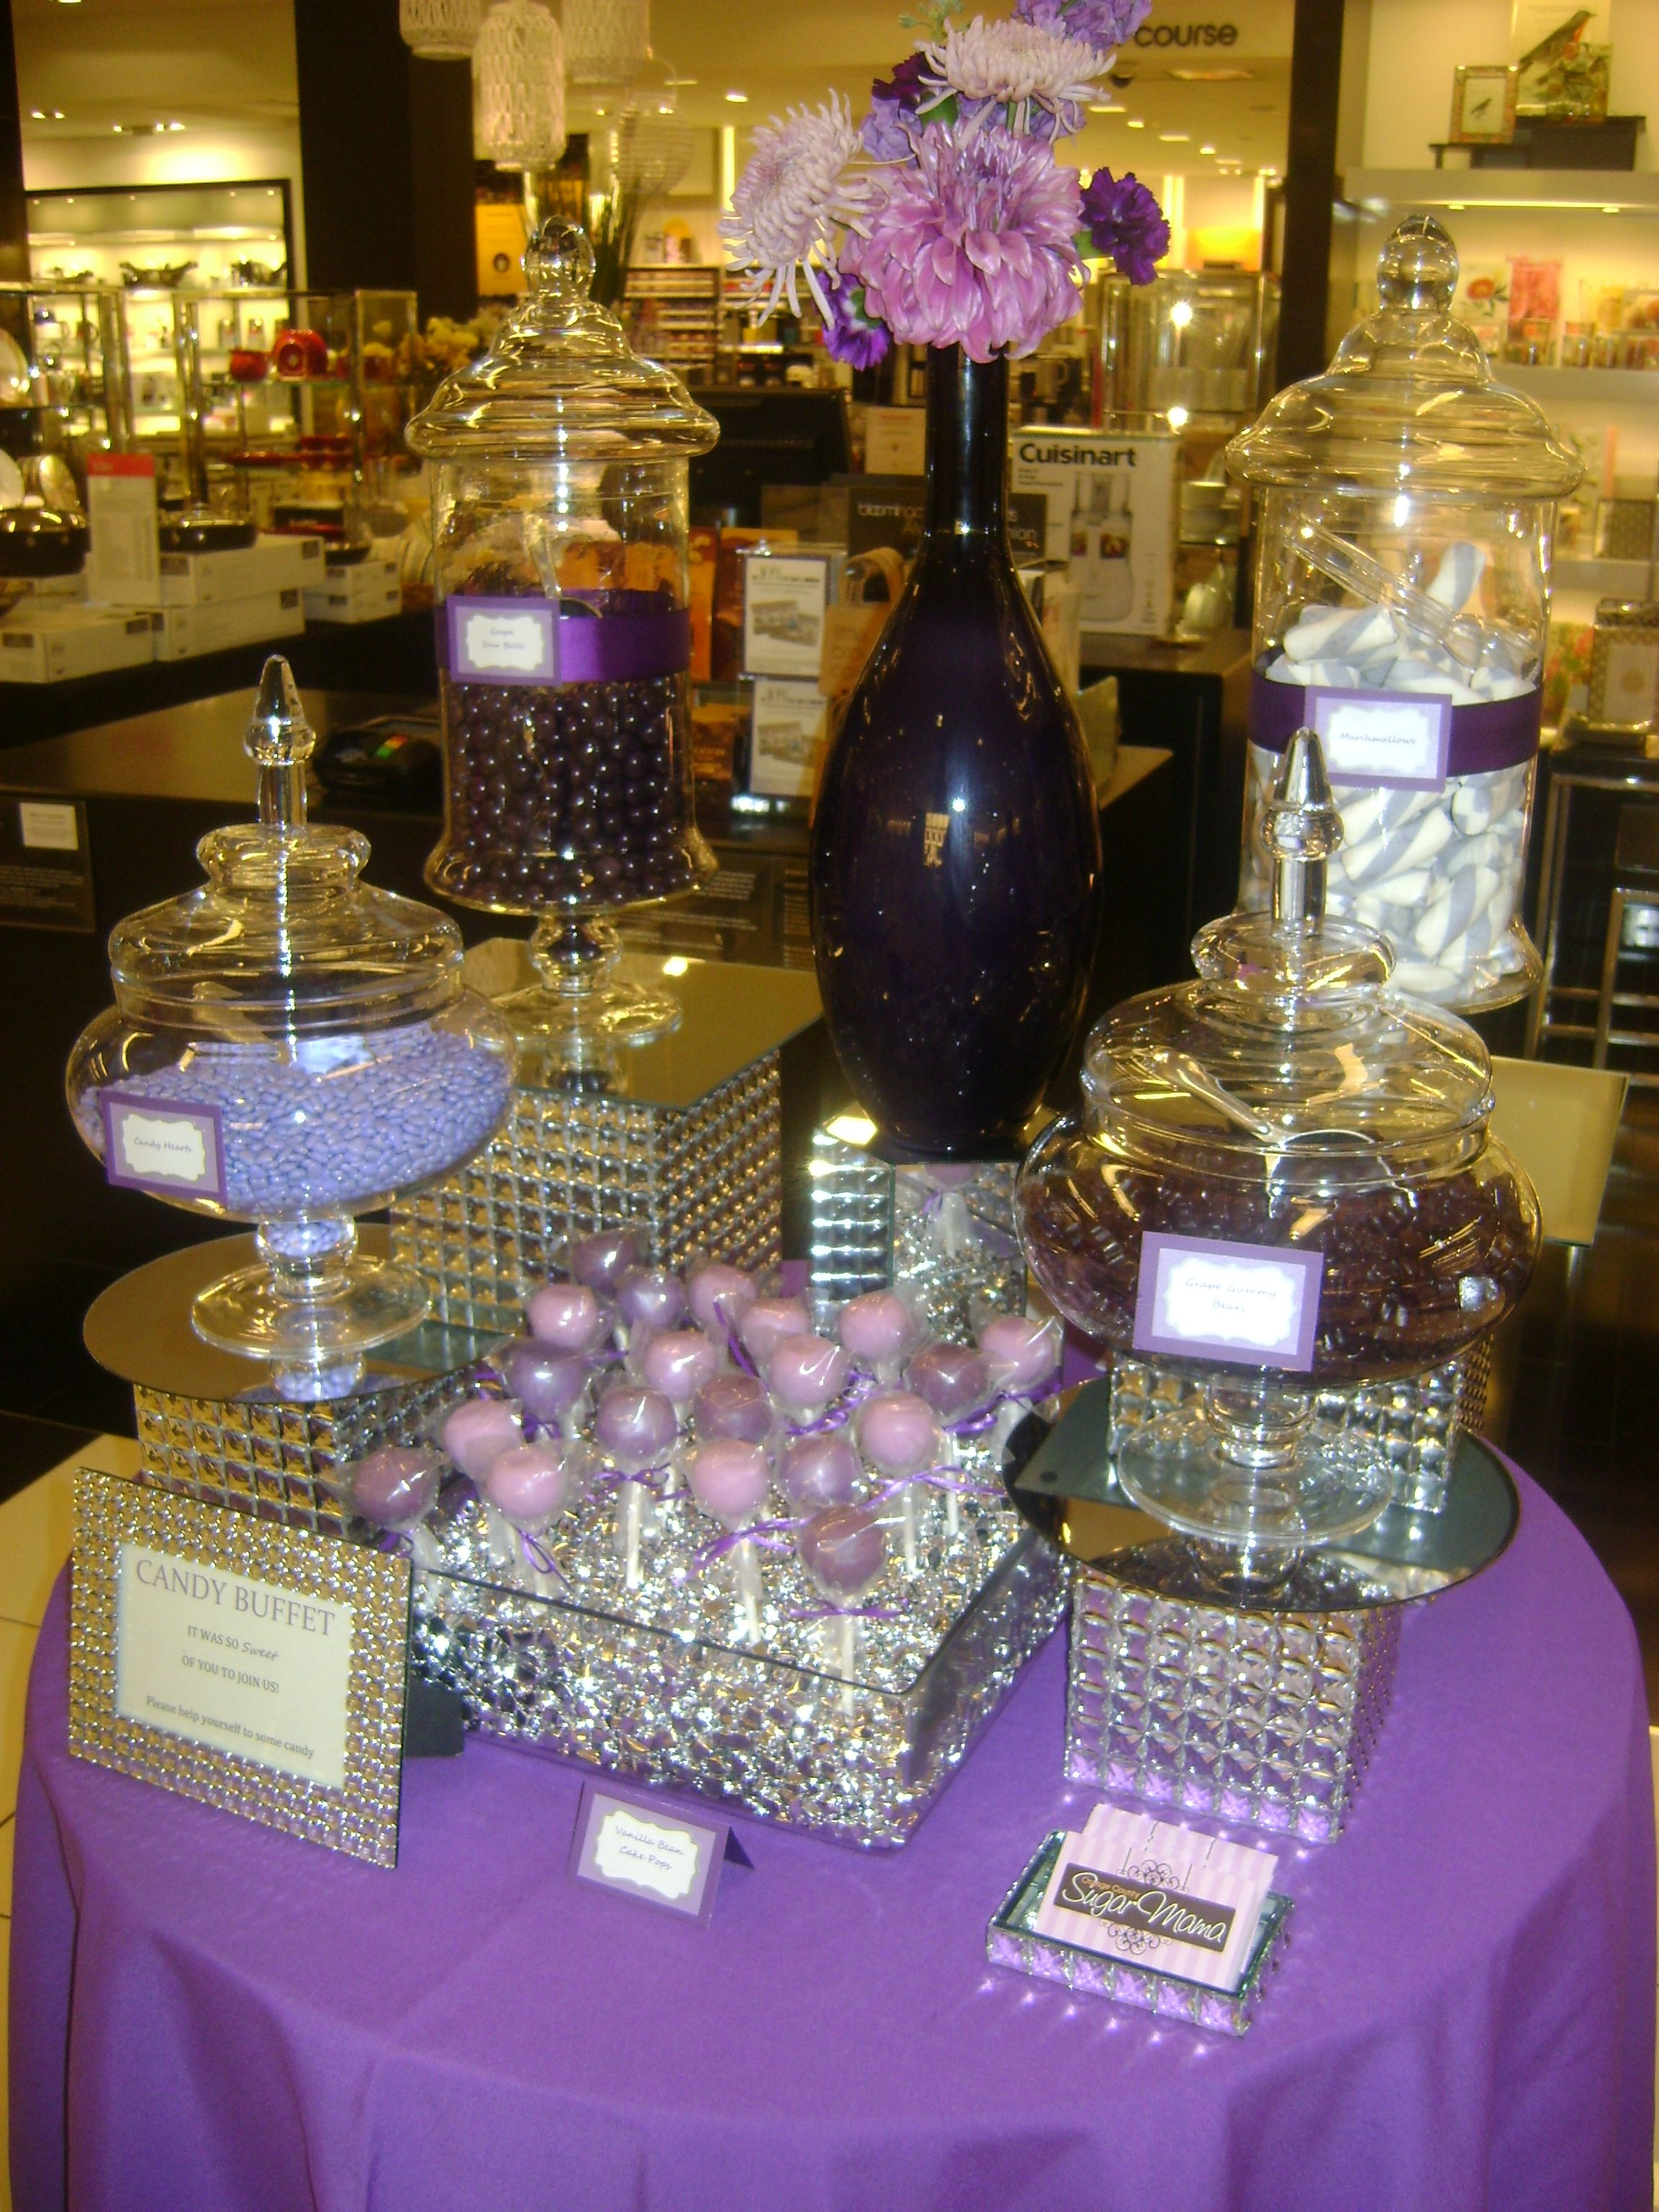 Elegant Purple And Silver Candy Buffet By Oc Sugar Mama Candy Buffet Wedding Candy Buffet Table Wedding Purple Candy Table